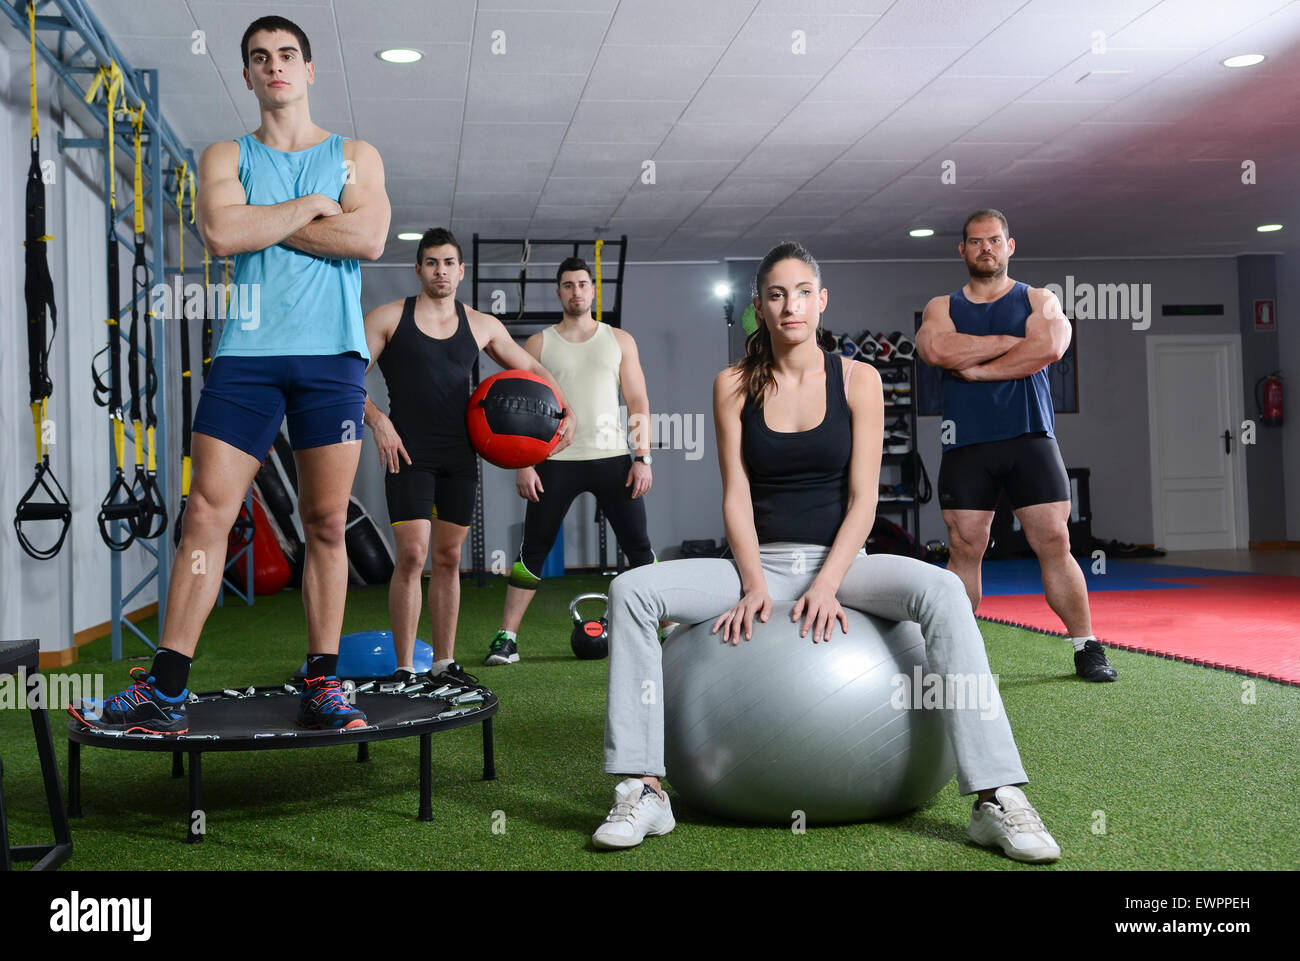 Groupe Crossfit gym au prêt pour les exercices et monter Photo Stock